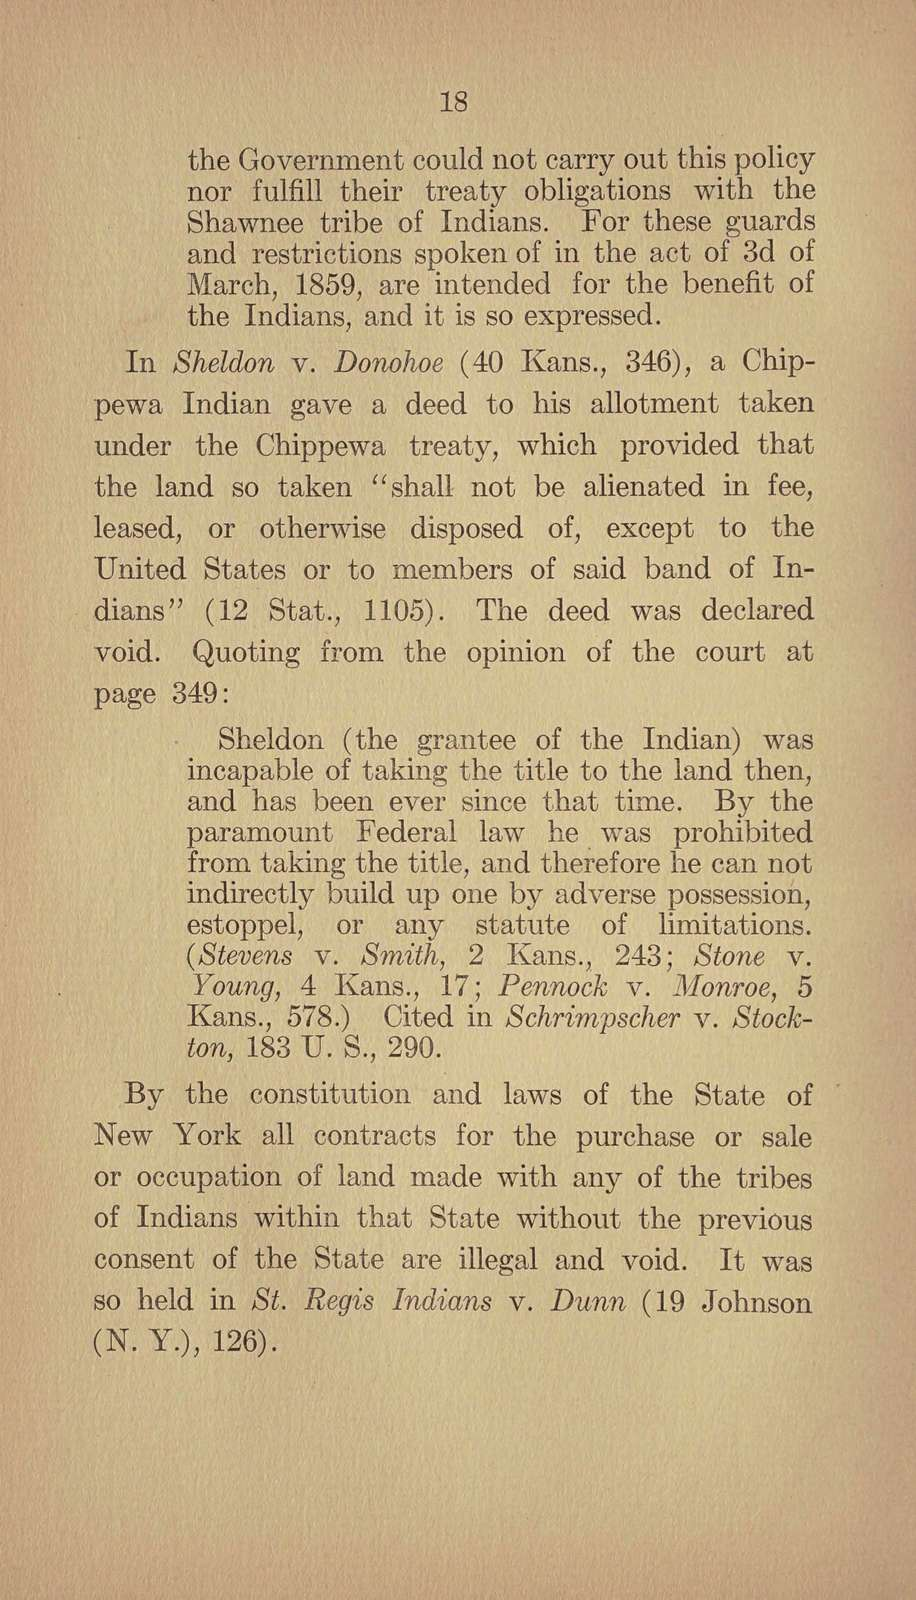 Brief. Suits brought by the United States to cancel deeds to Indian allotments